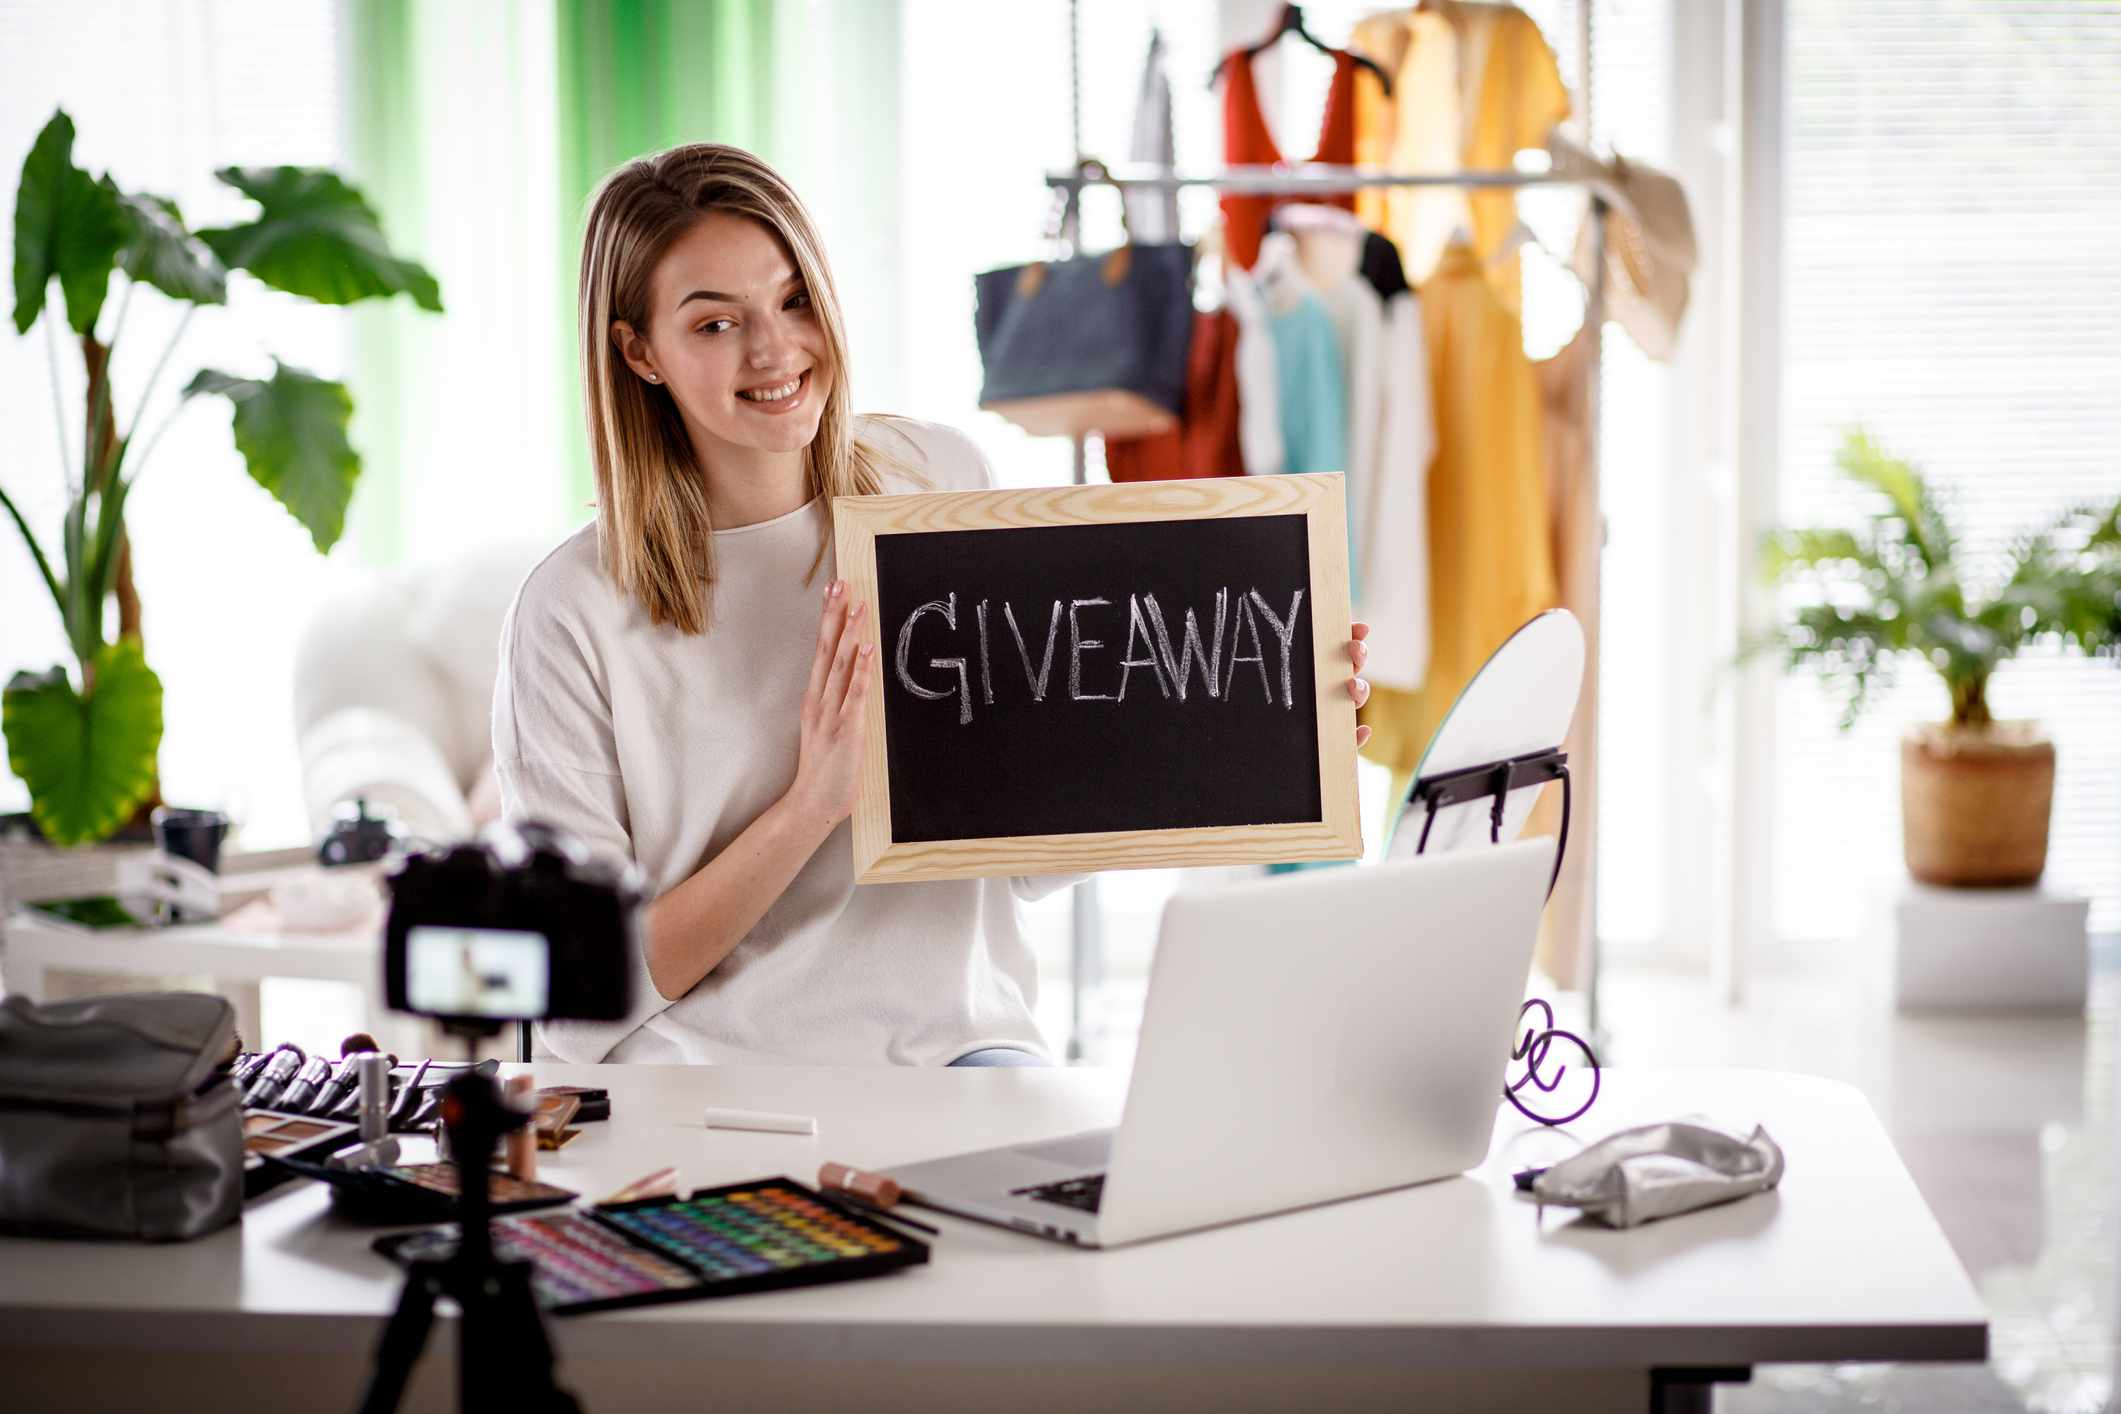 Beauty and fashion vlogger creating a giveaway campaign at home. Make-up products are in front of her, clothes are in the background.